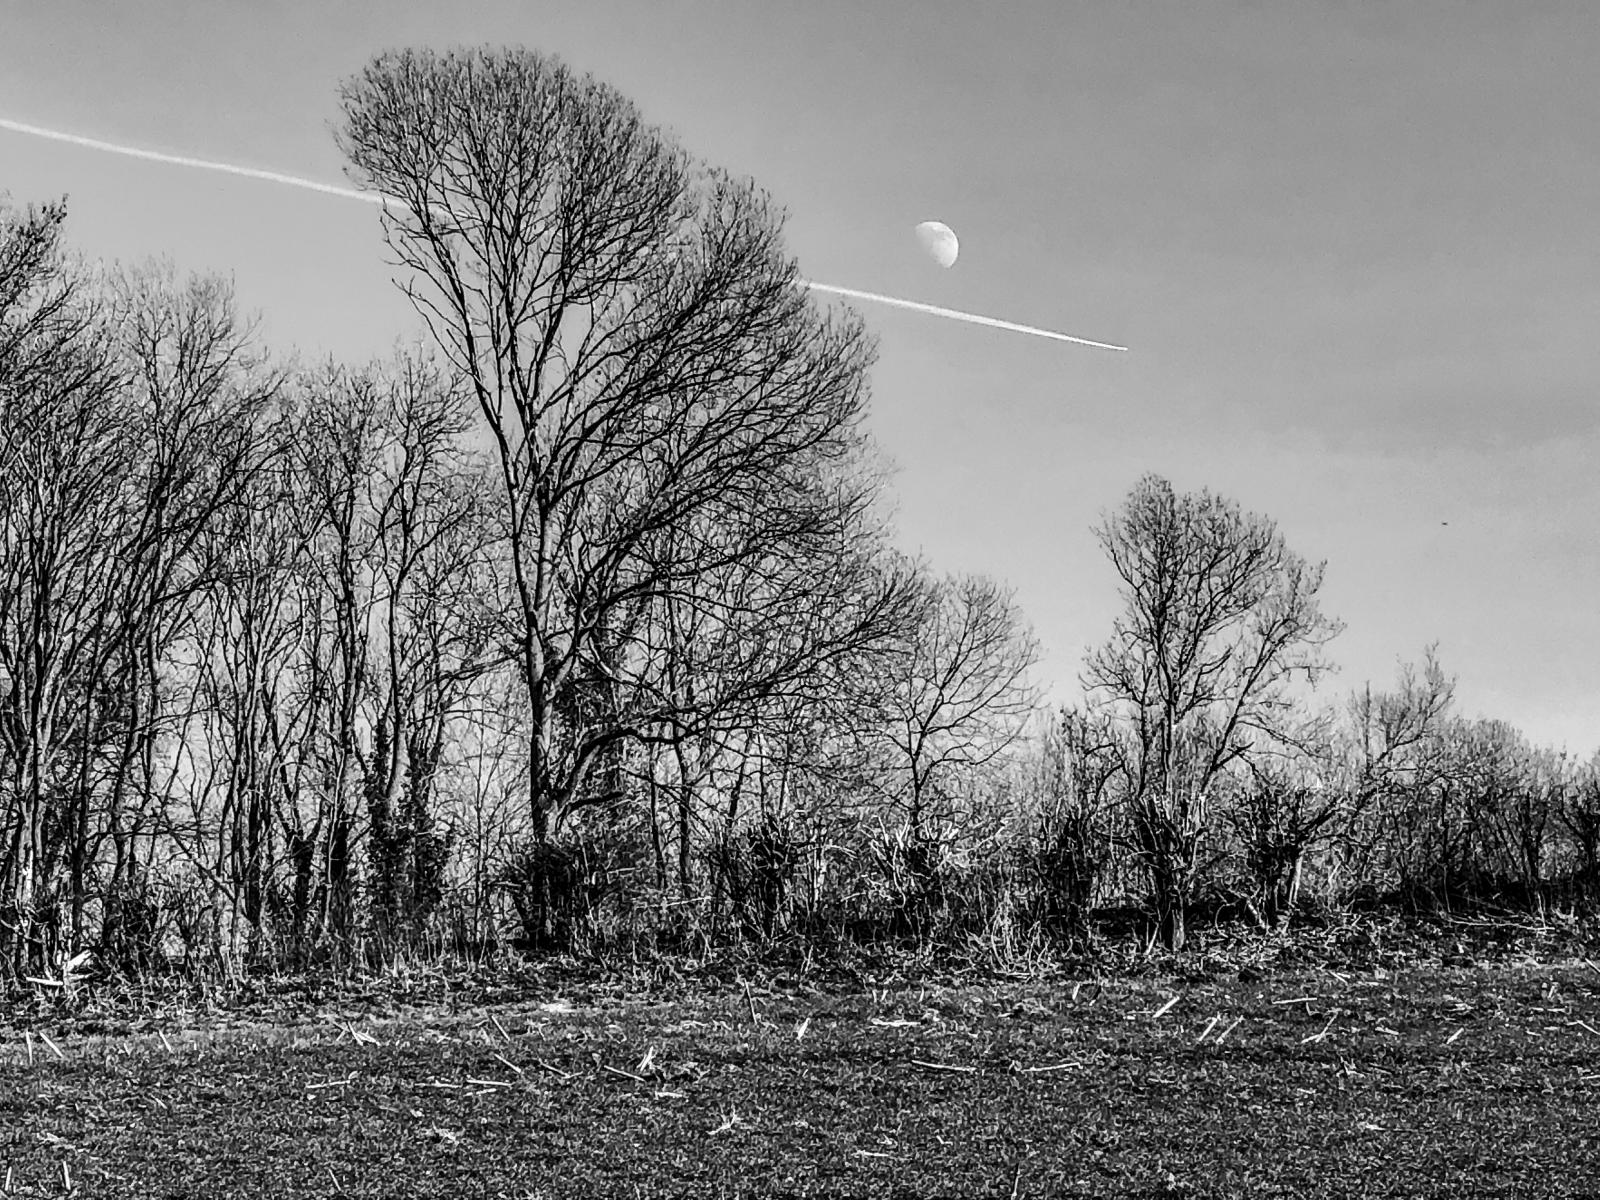 Photography image - Loading James_Reade_Venable__To_The_Moon.jpg